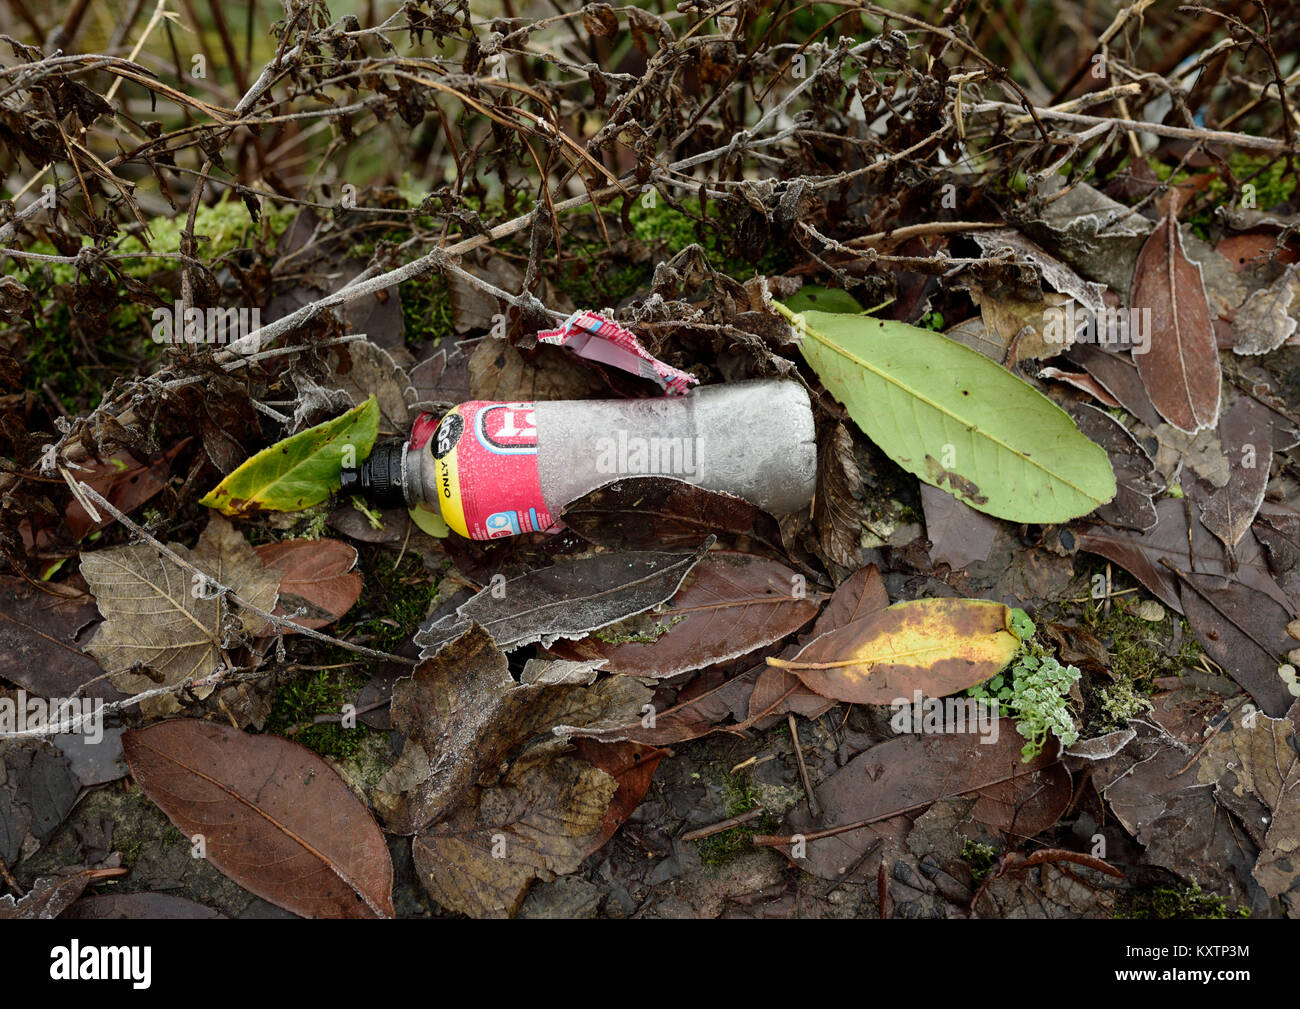 Plastic bottle and rubbish thrown away in countryside among rotting leaves - Stock Image